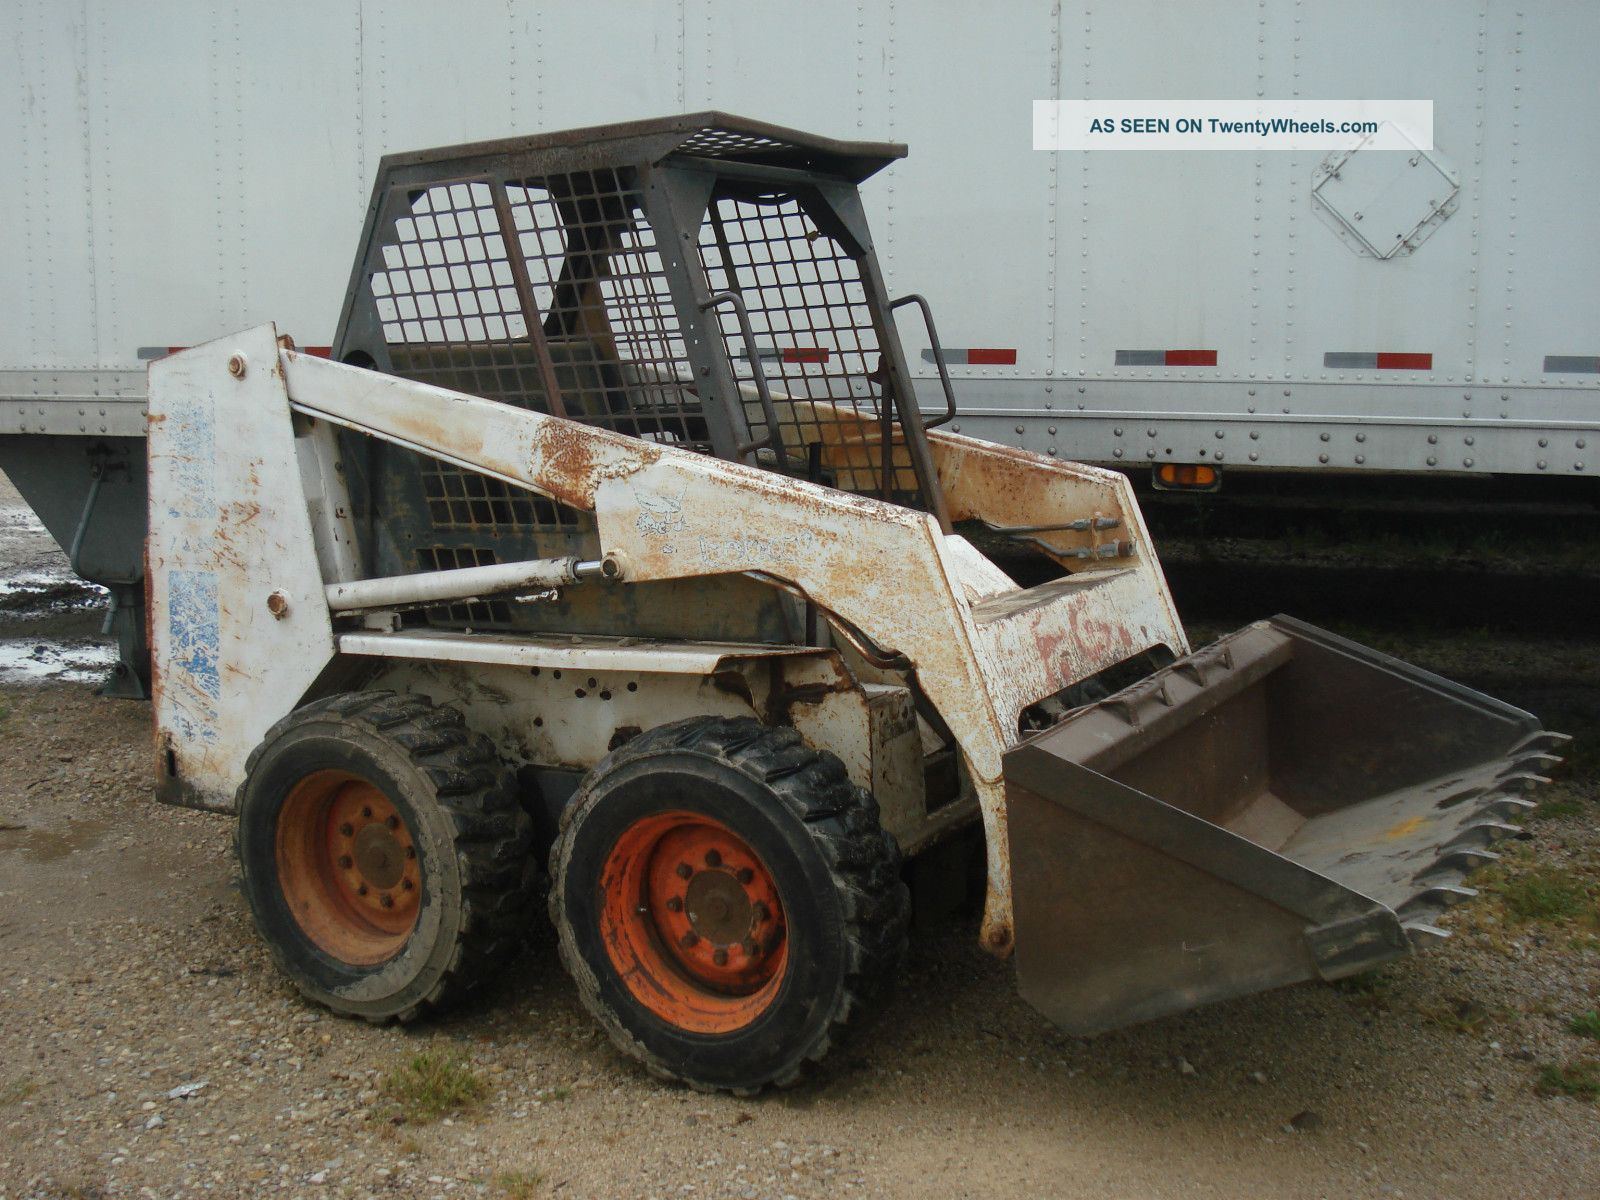 1993 Bobcat 743b Skidsteer Loader Skid Steer Loaders photo